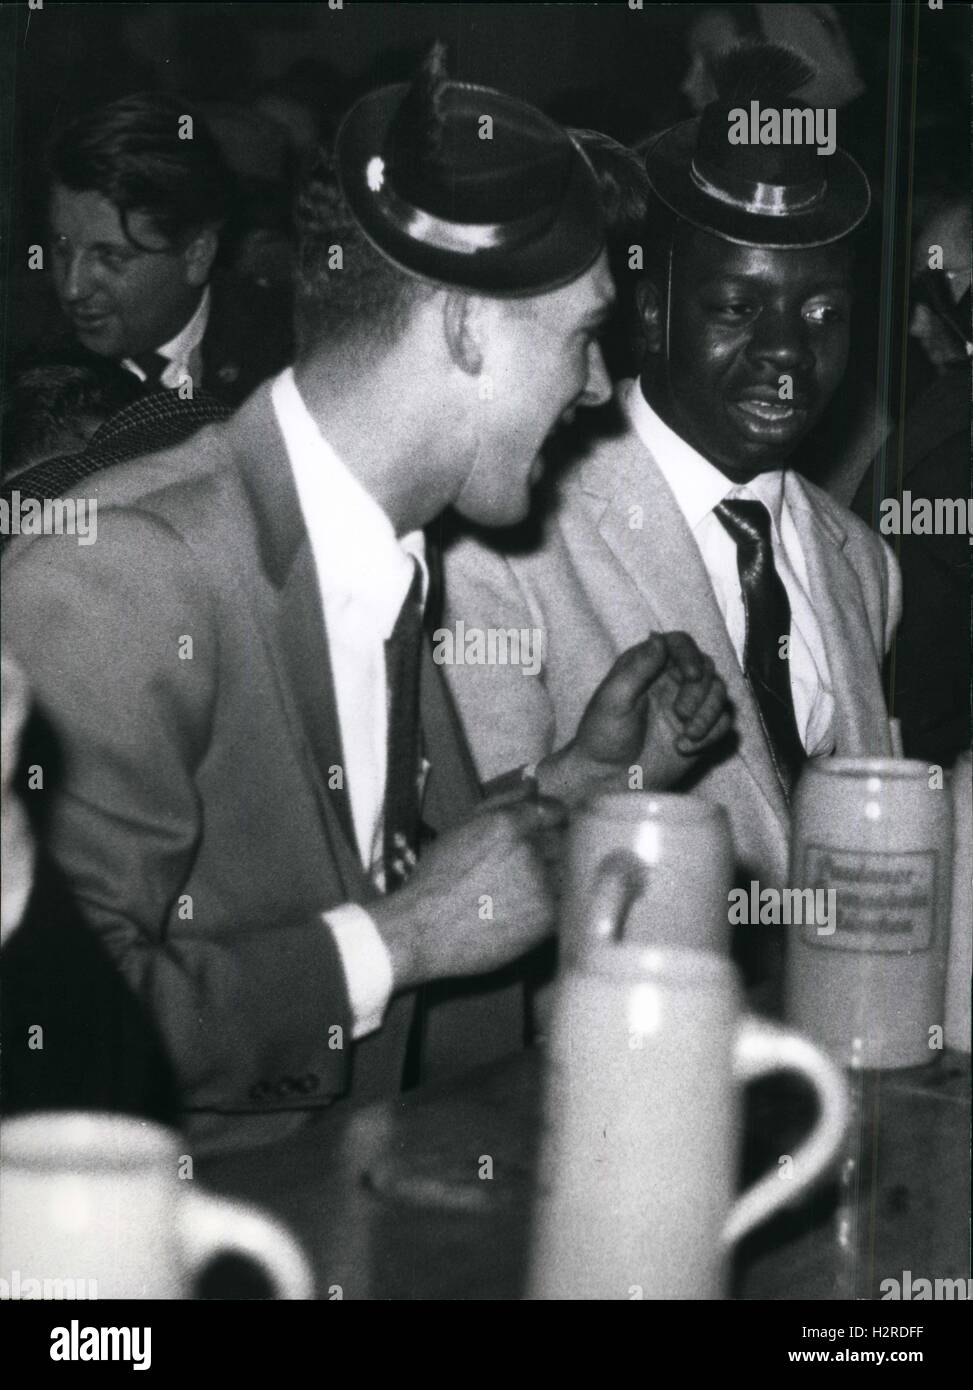 1954 - Drinking beer mixed race bar Racial segregation. Germany © Keystone Pictures USA/ZUMAPRESS.com/Alamy - Stock Image